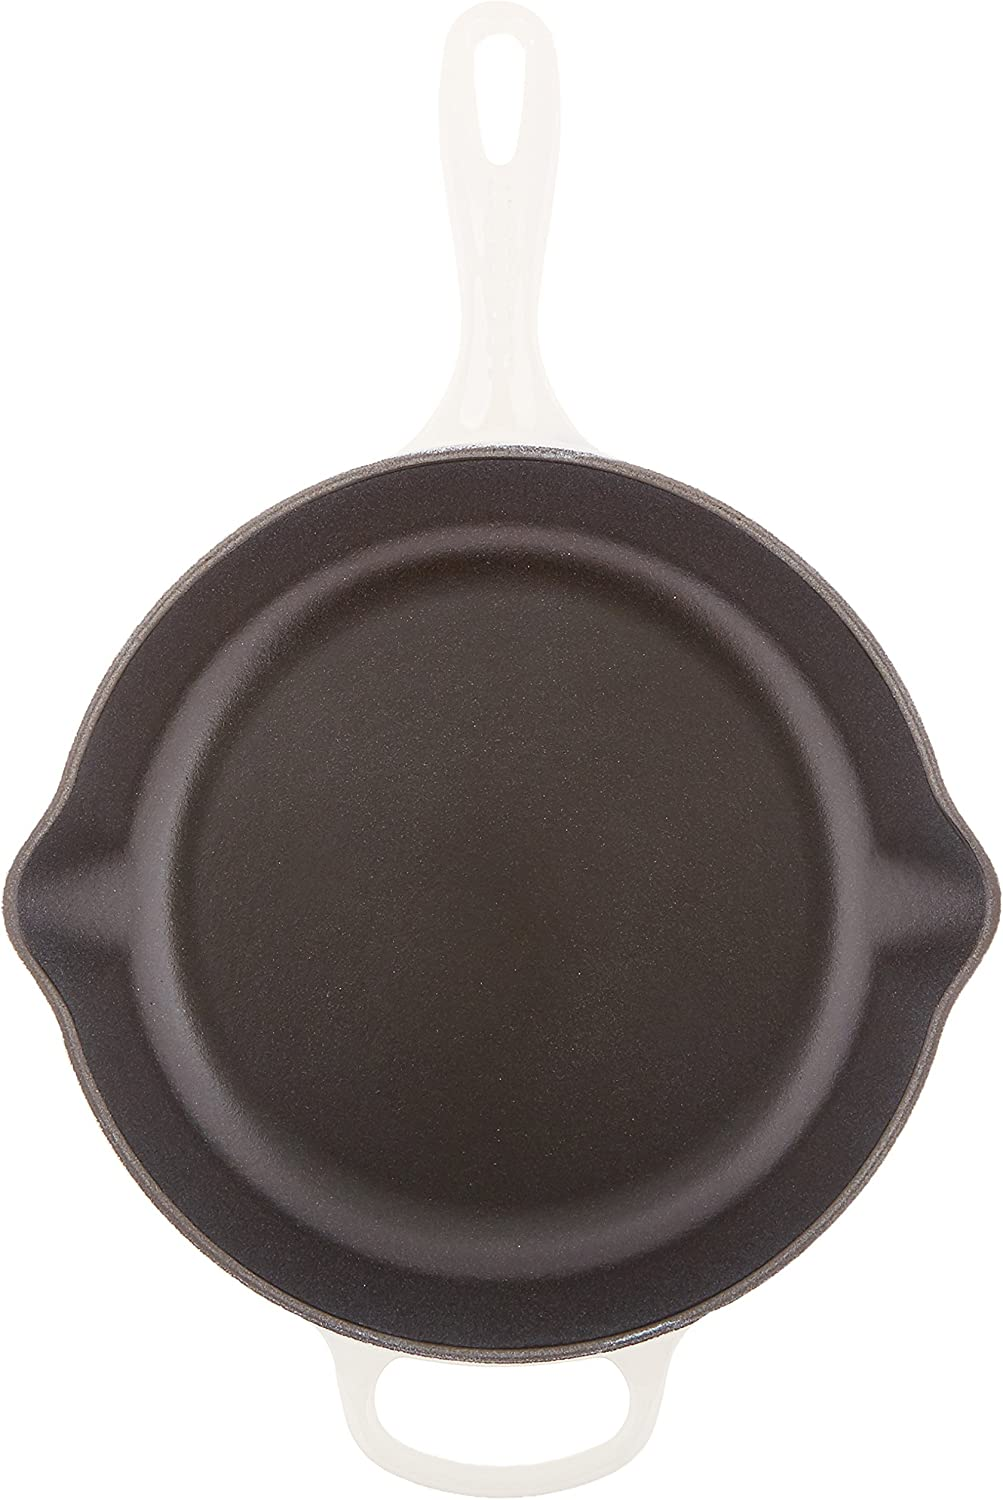 Le Creuset 10-1//4 in Provence Signature Round Cast-iron Skillet